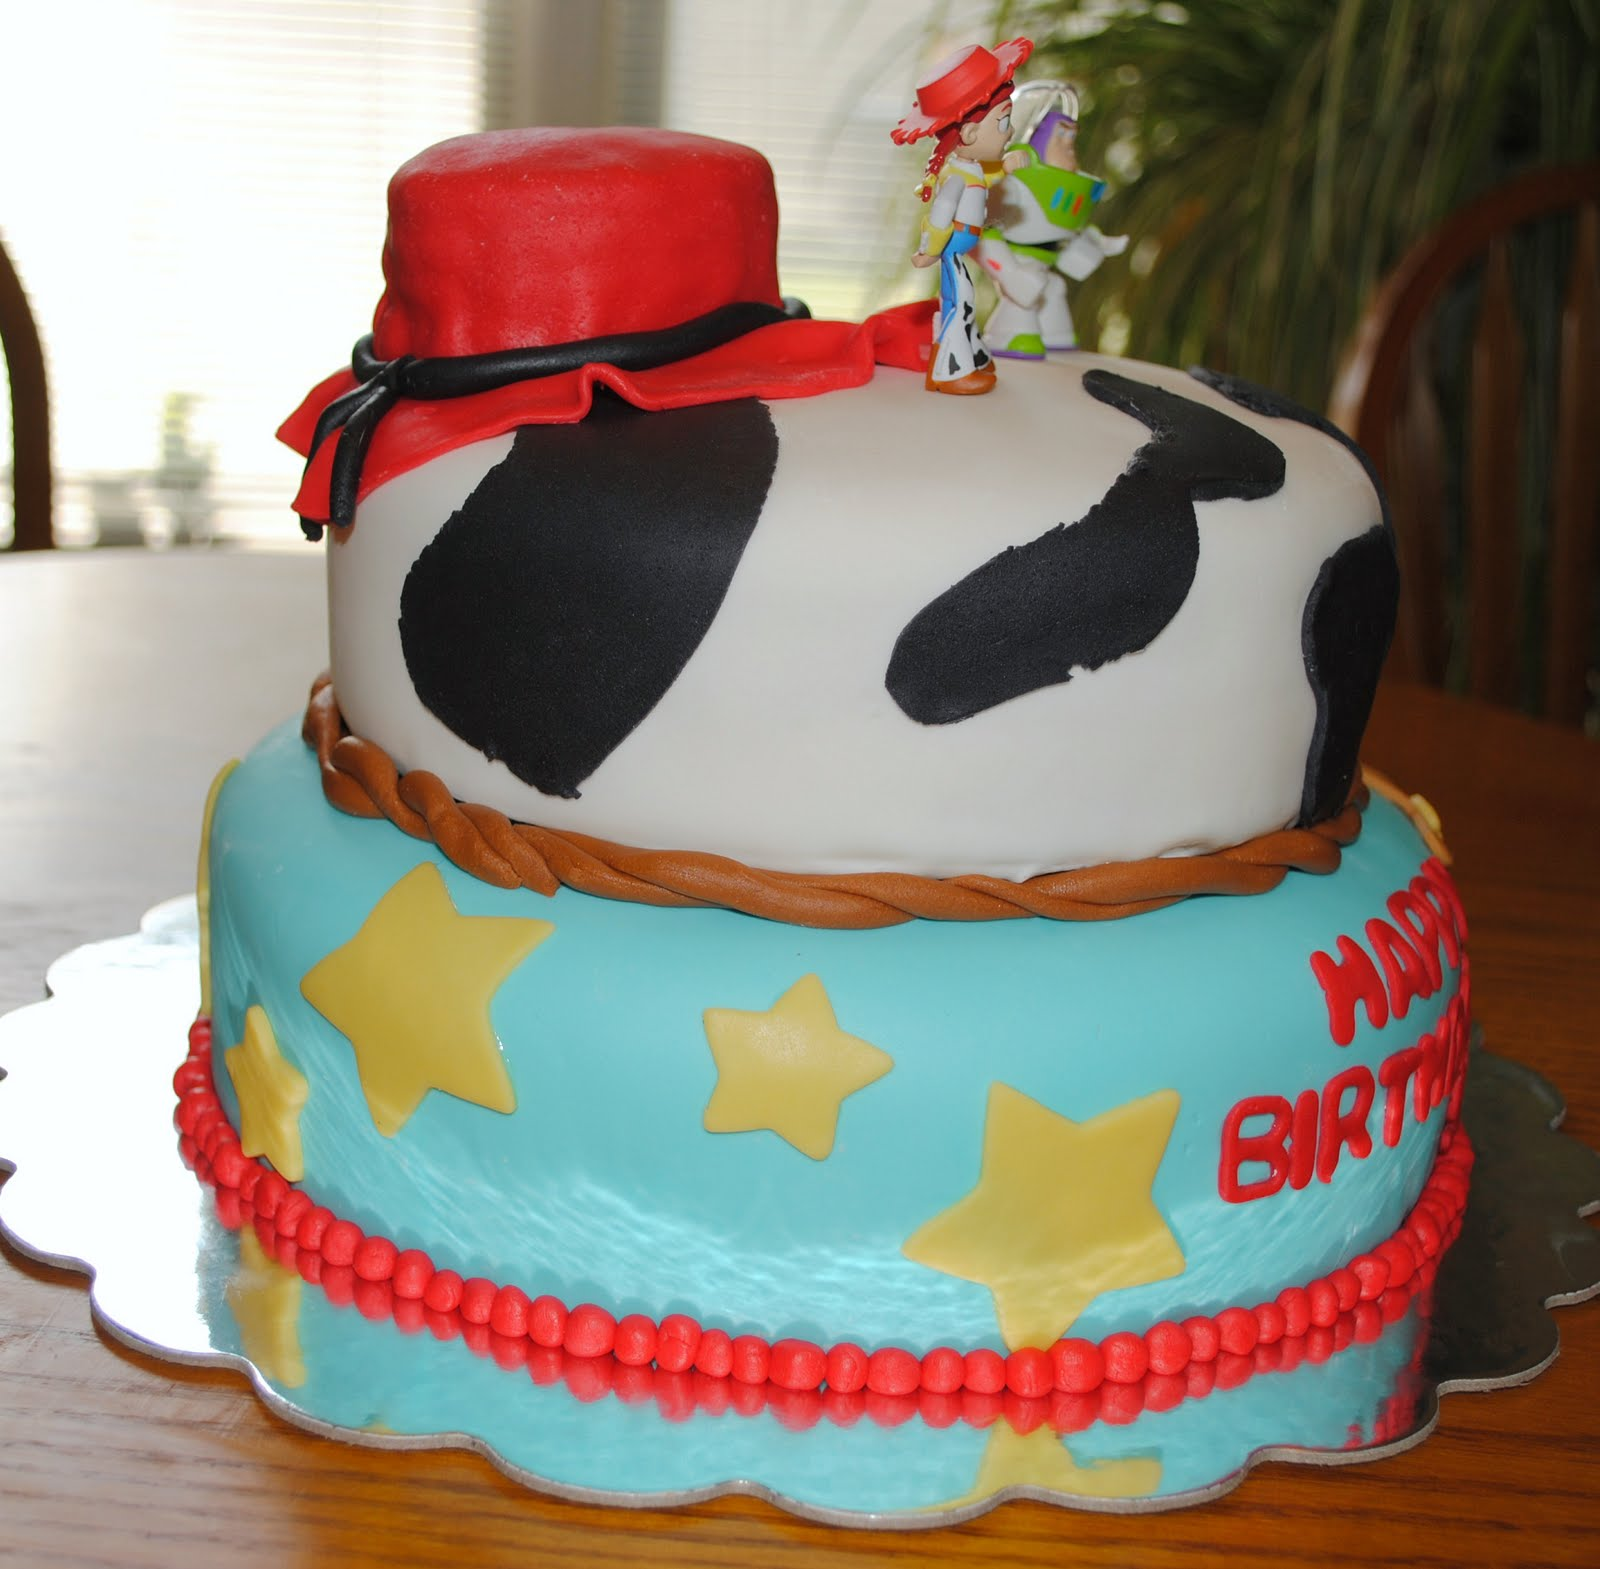 Homemade By Holman: Fondant Toy Story Birthday Cake